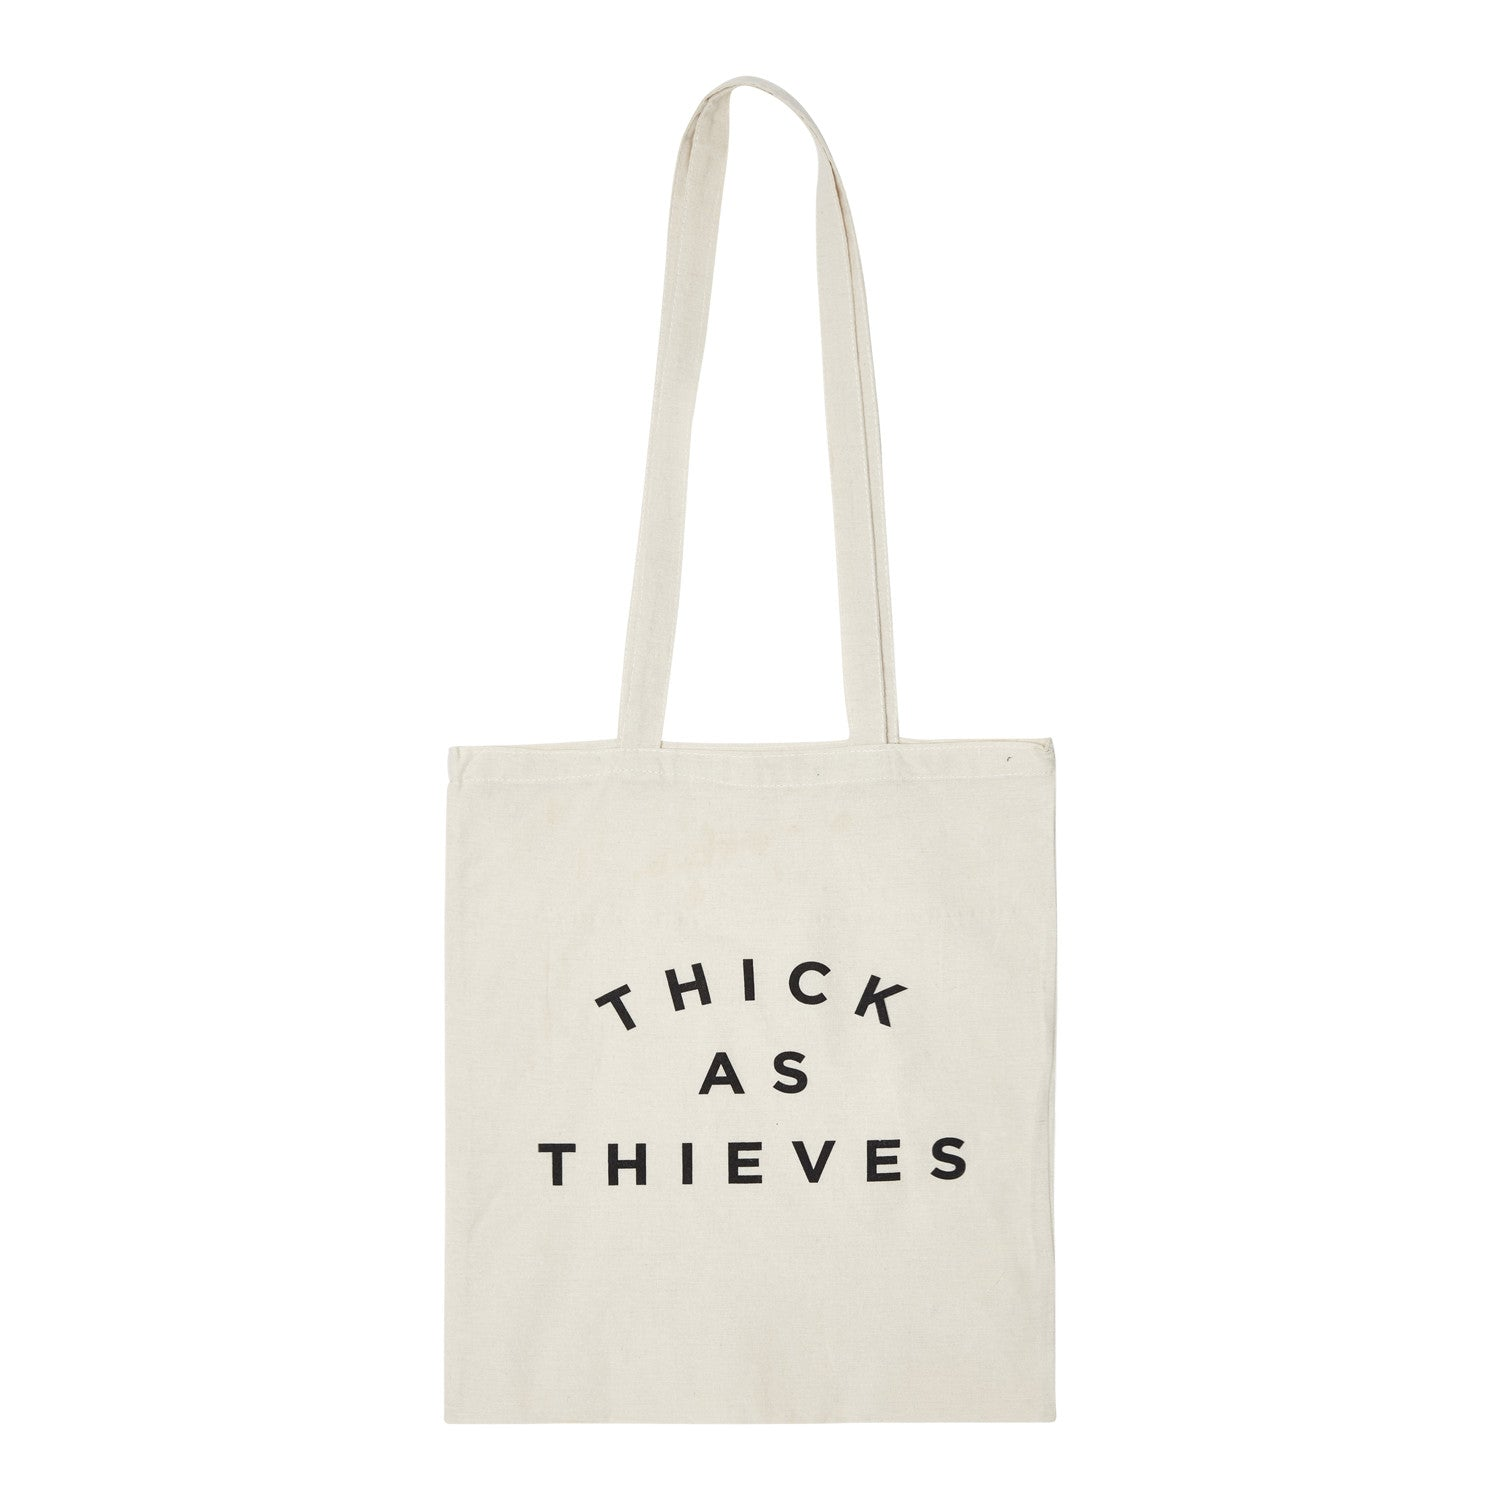 5.5 Thieves Canvas Tote Bag